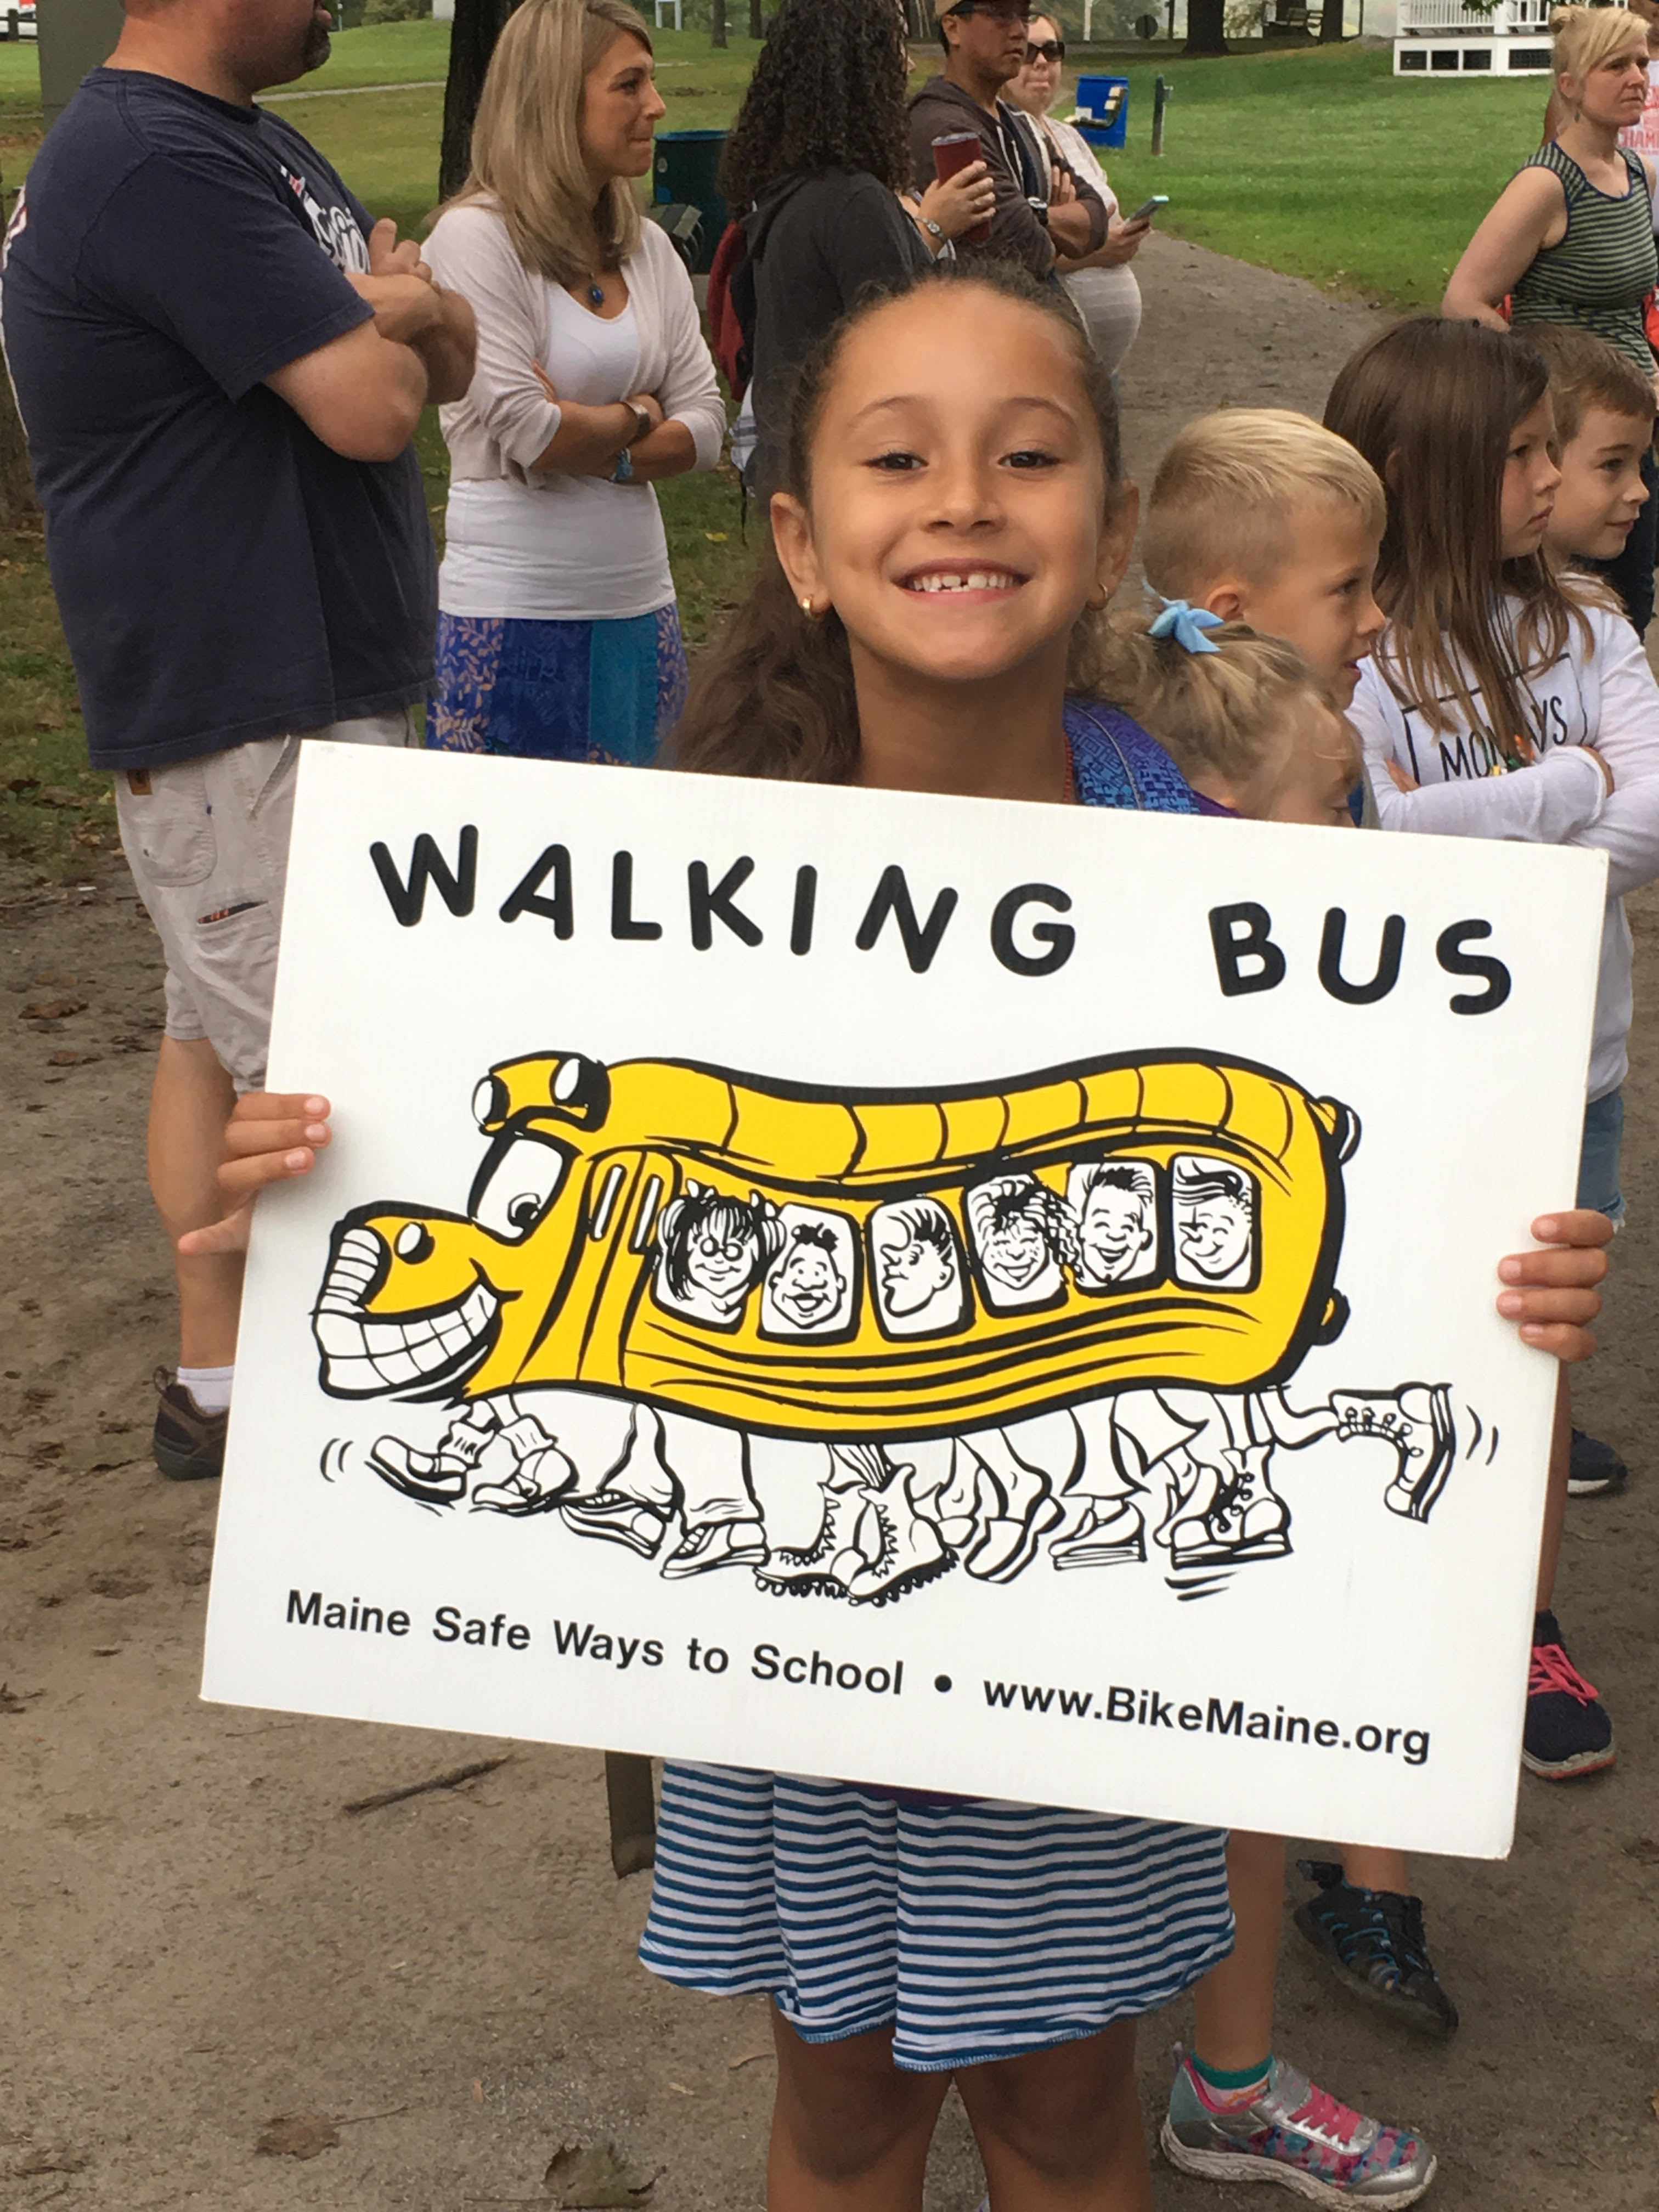 Our Walking School Bus continues to be fueled up and running strong on Monday mornings! Come join Mrs. Moody, Mrs. Gruber, Mrs. Murphy, and other staff at 7:55 at the park to walk up to school! Students earn feet charms to collect on a chain each time they walk to school! It is a healthy way to start our week. We will continue until November 5th. Then we resume in the spring!